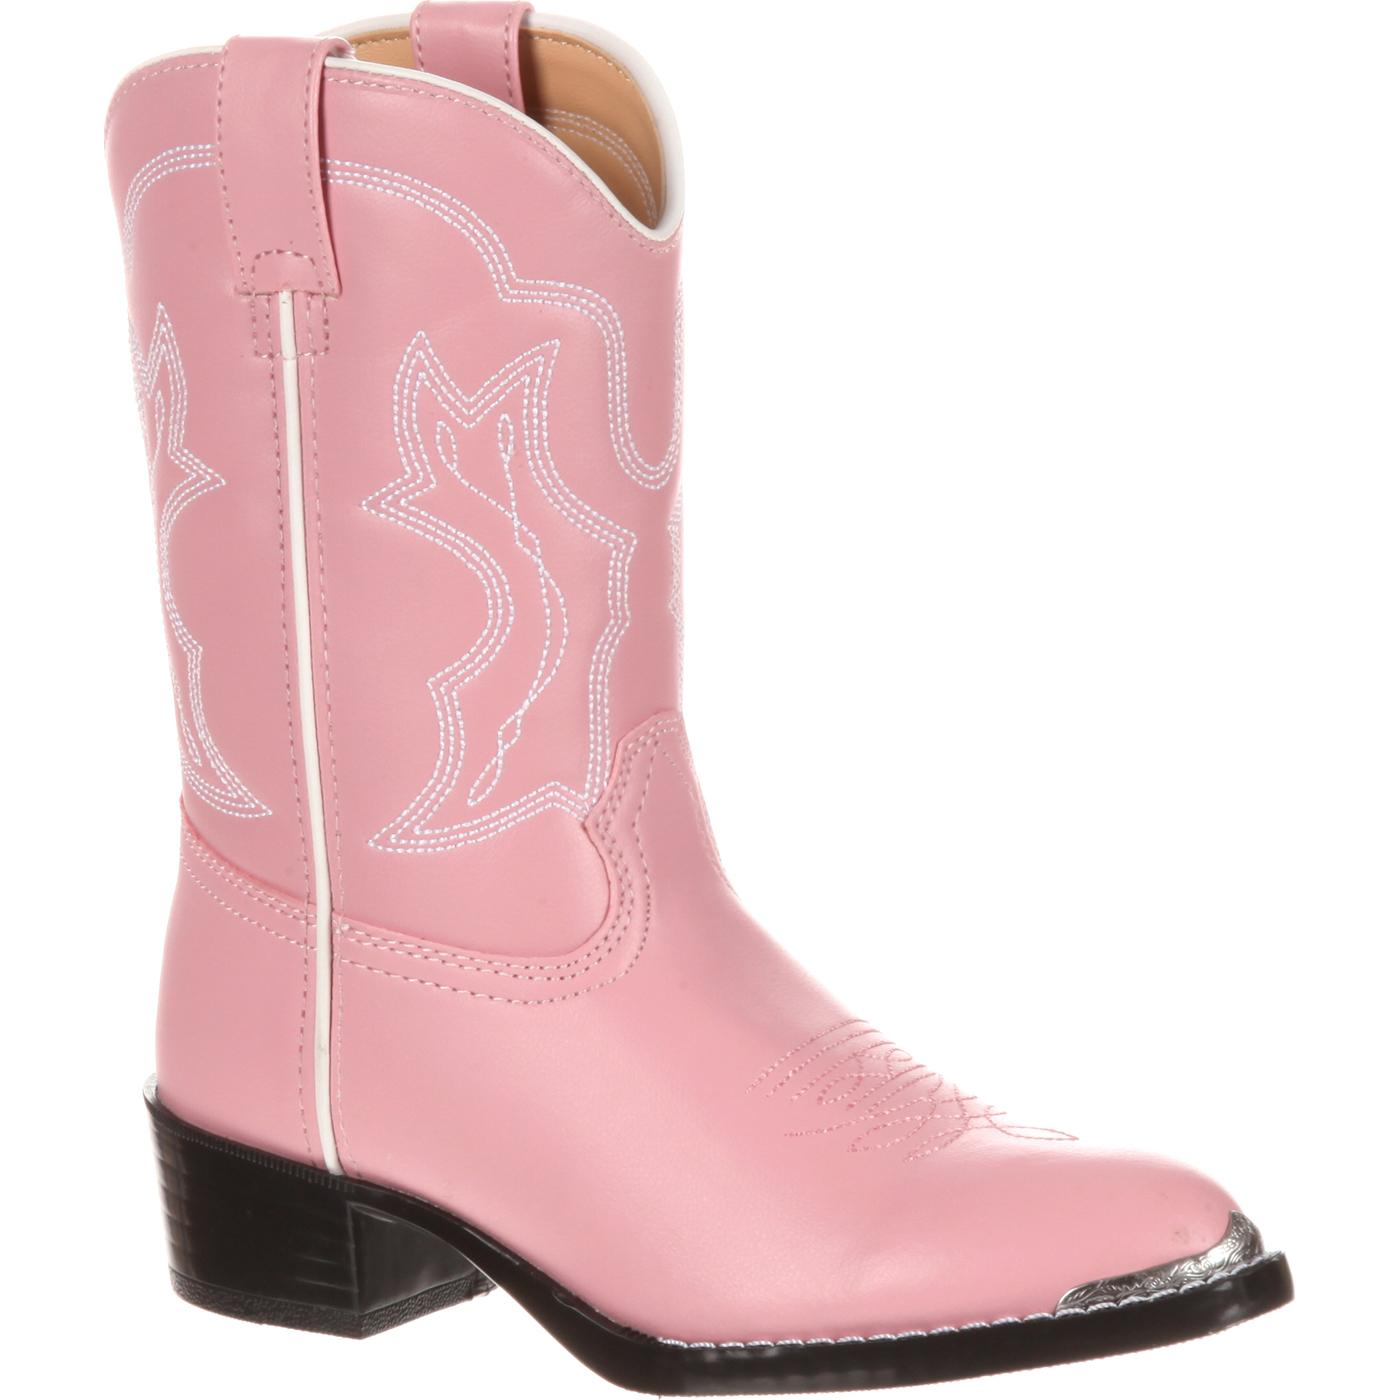 71f4ad95a47 Durango Toddler Dusty Pink & Chrome Western Boot